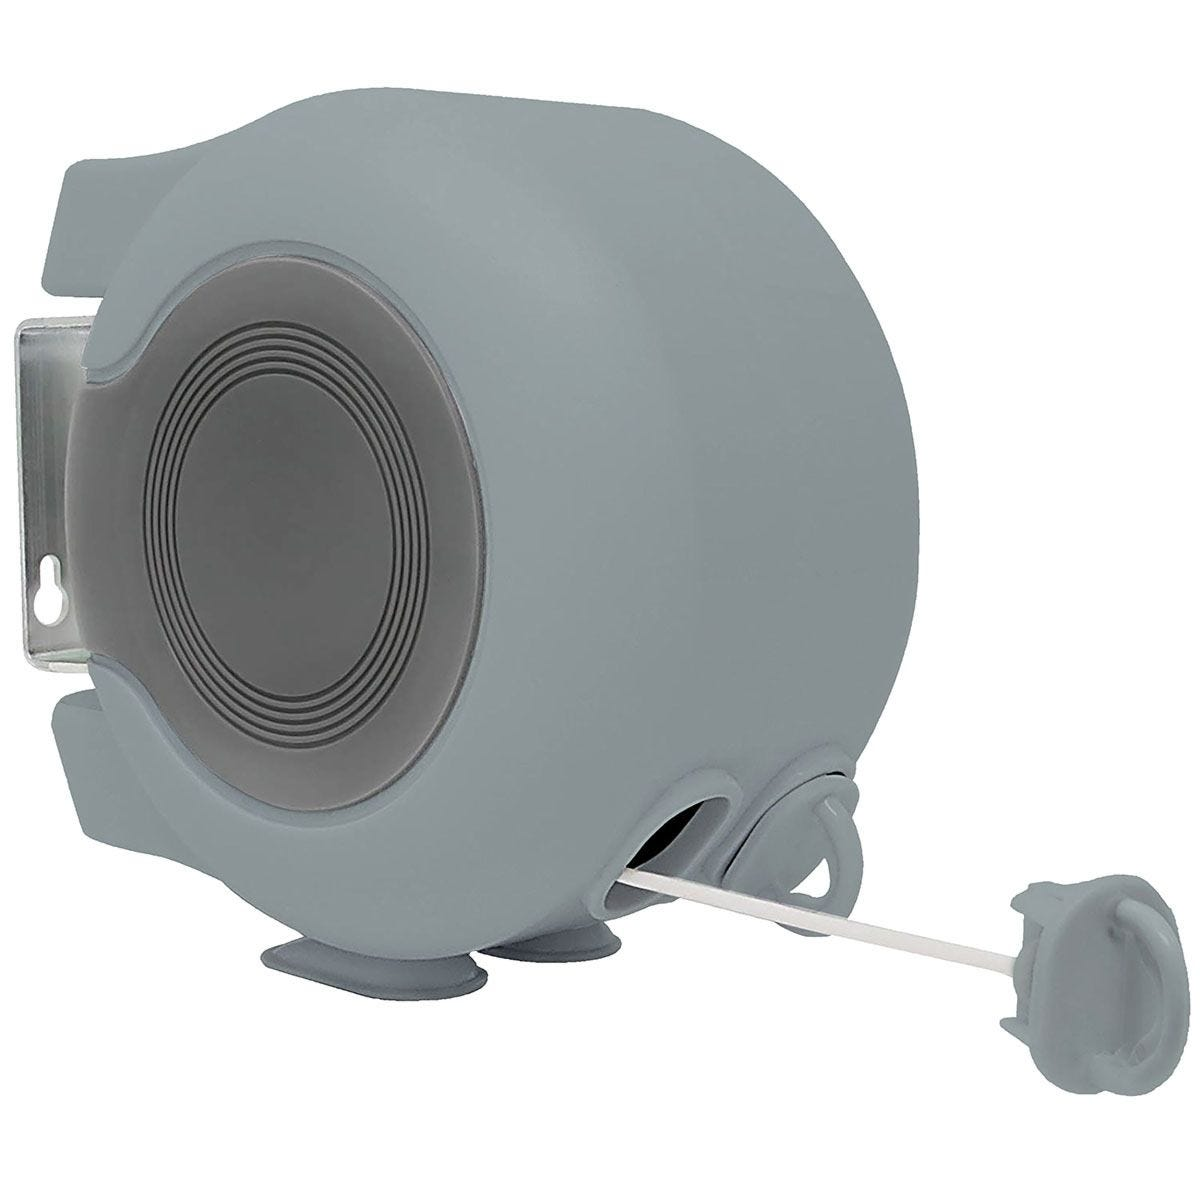 OurHouse Retractable 2-Line Dryer - Grey